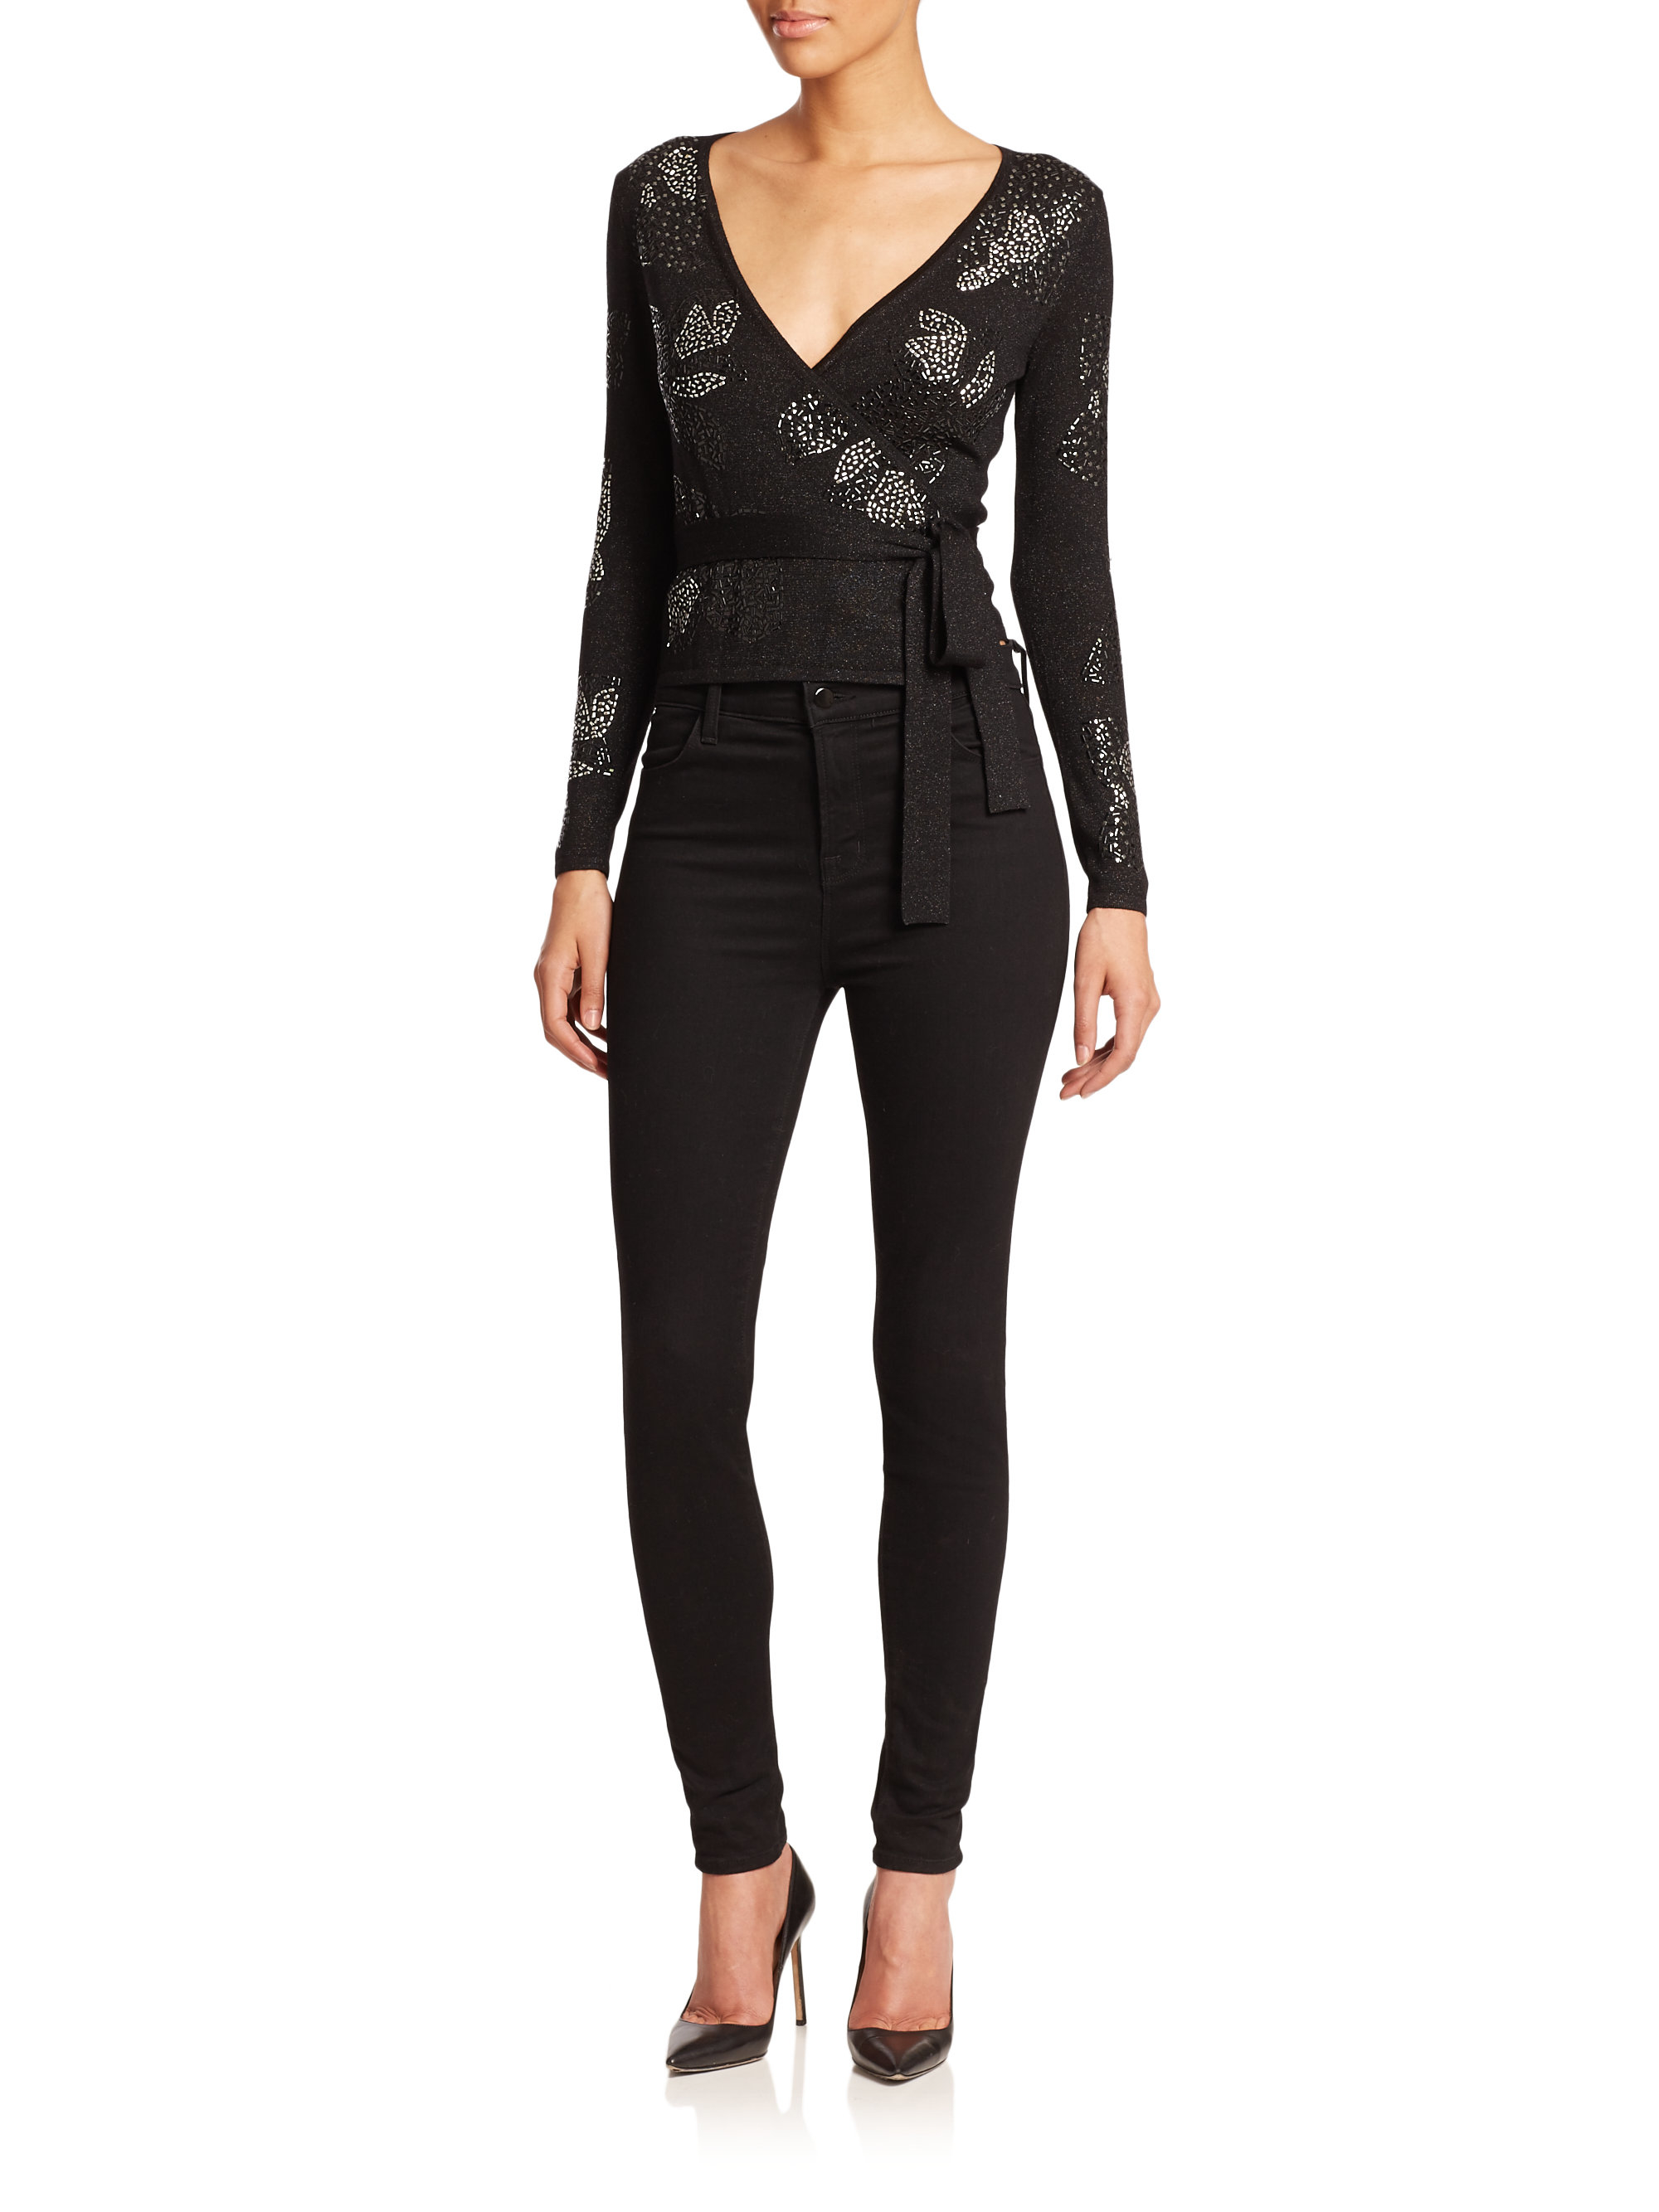 Diane von furstenberg Embellished Ballerina Wrap Sweater in Black ...